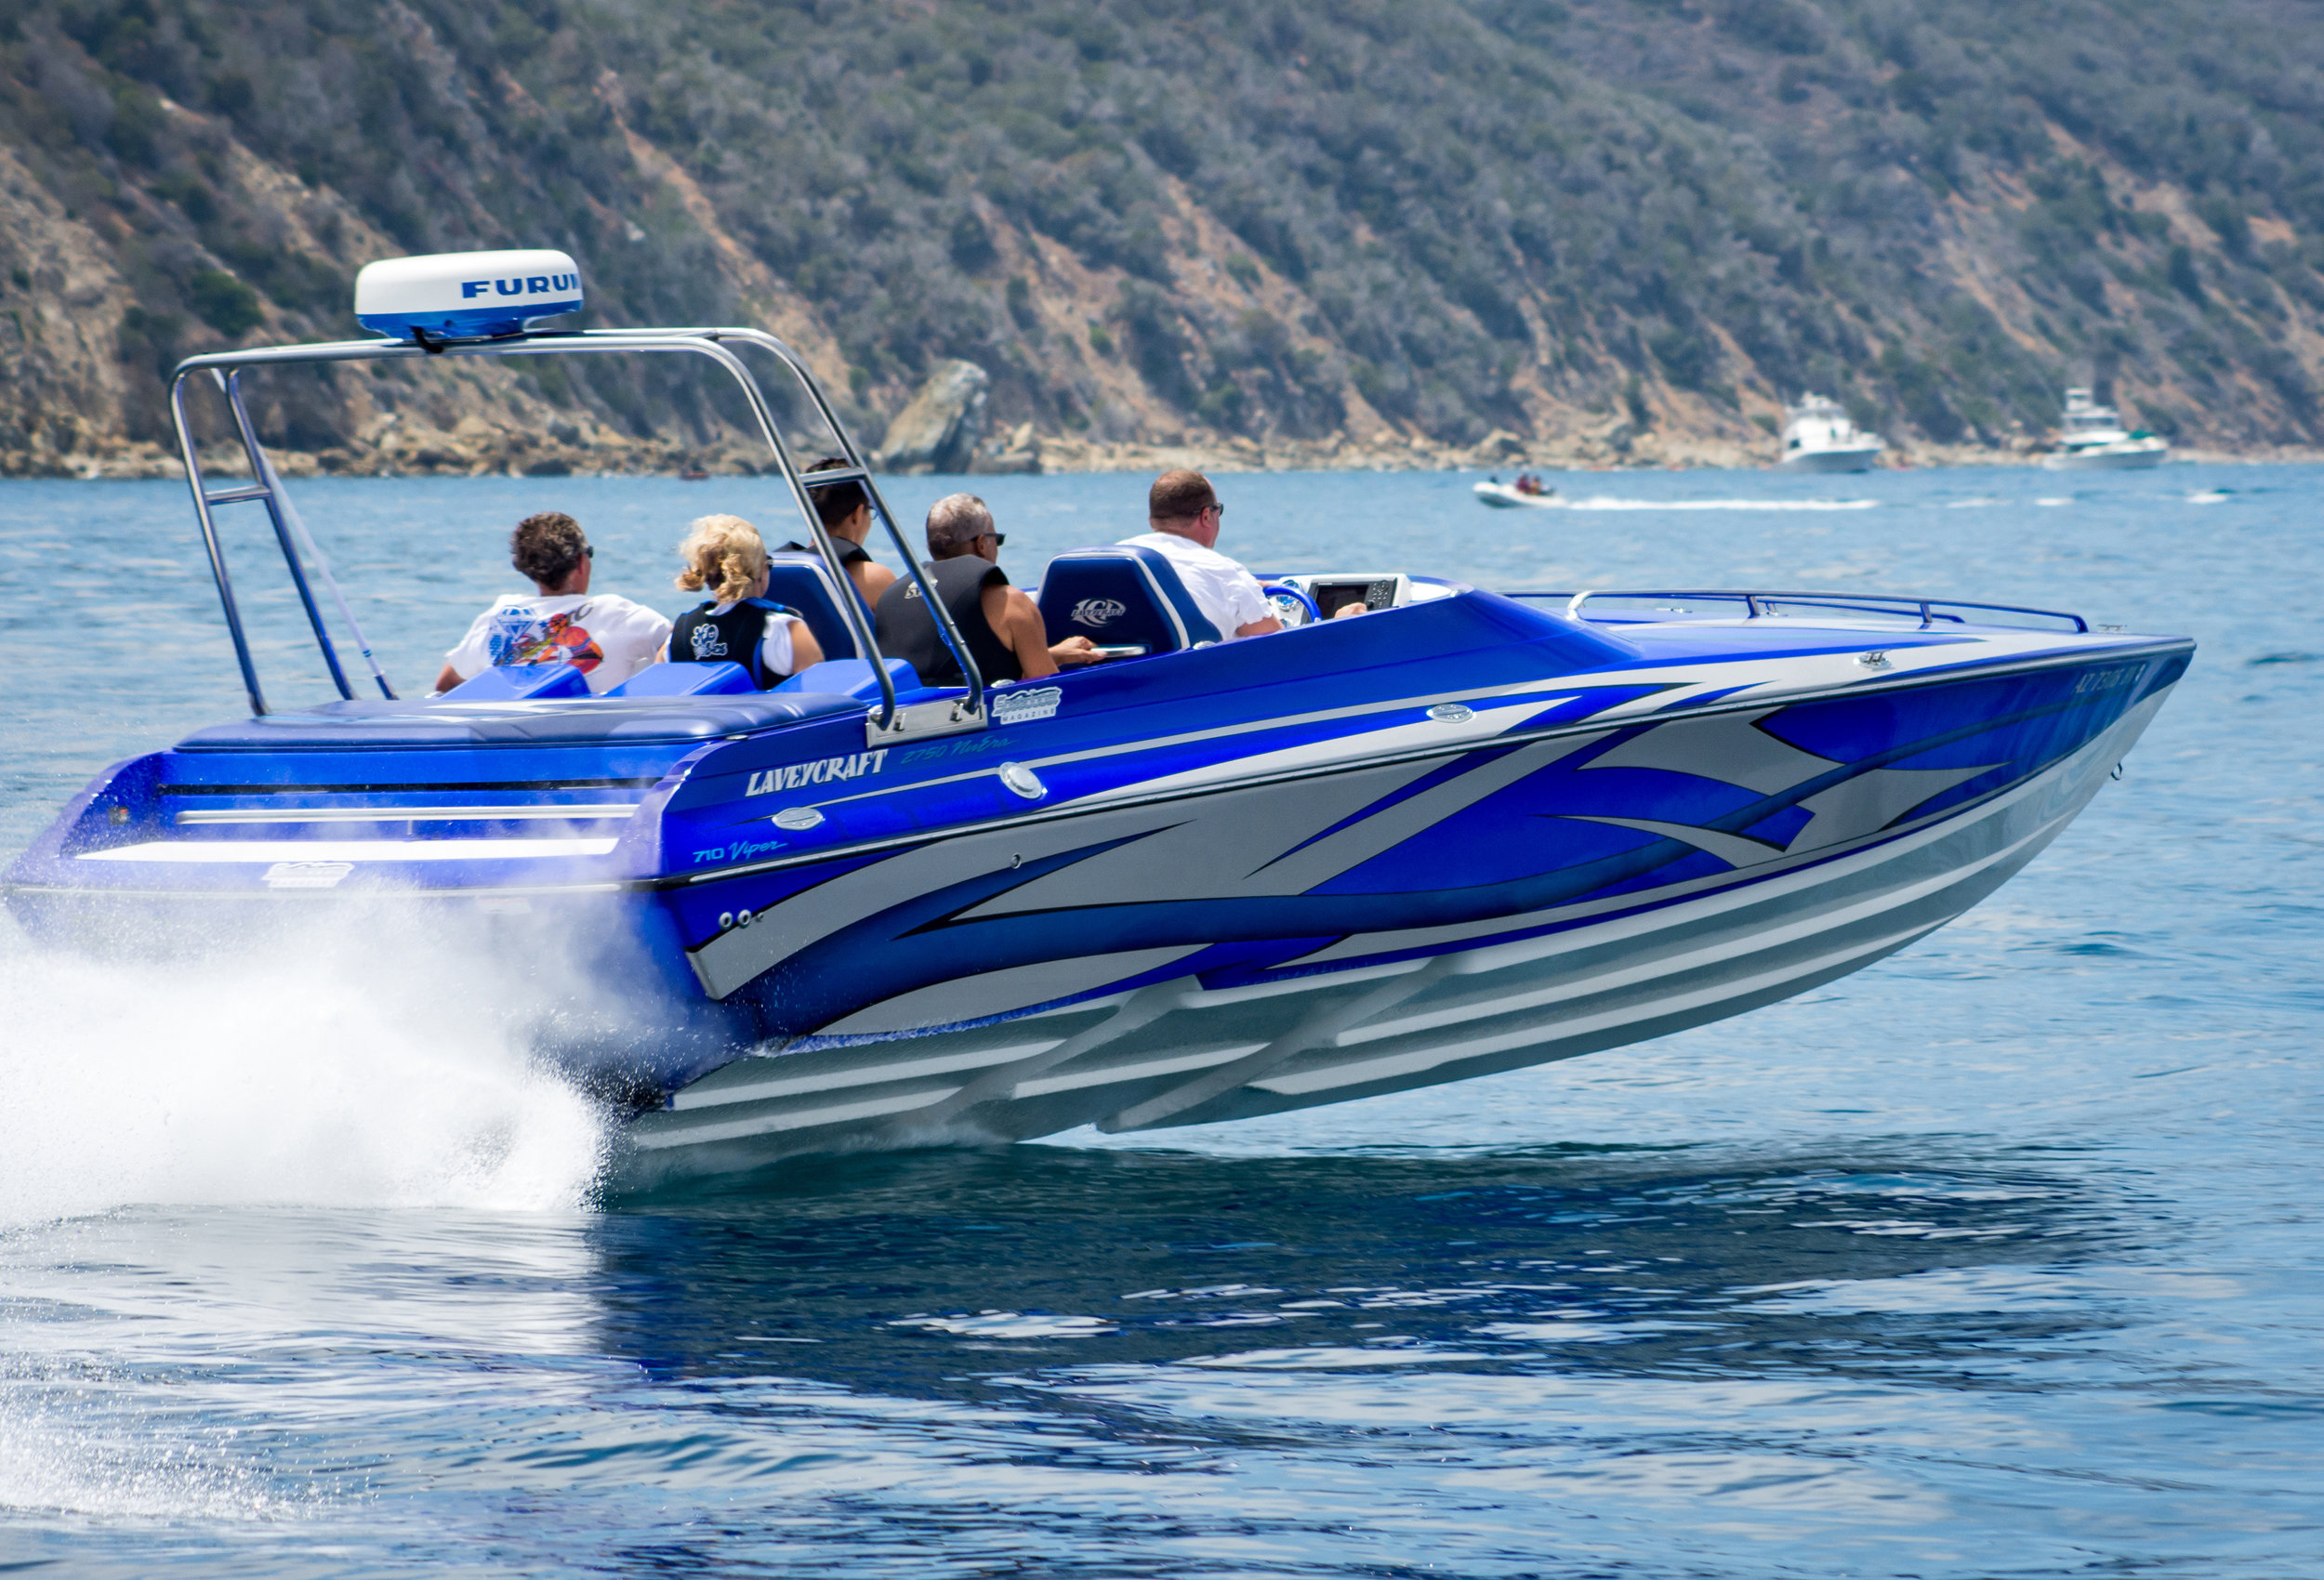 2750 NuEra Lavey Craft - Uncle Dave pic 1.jpg